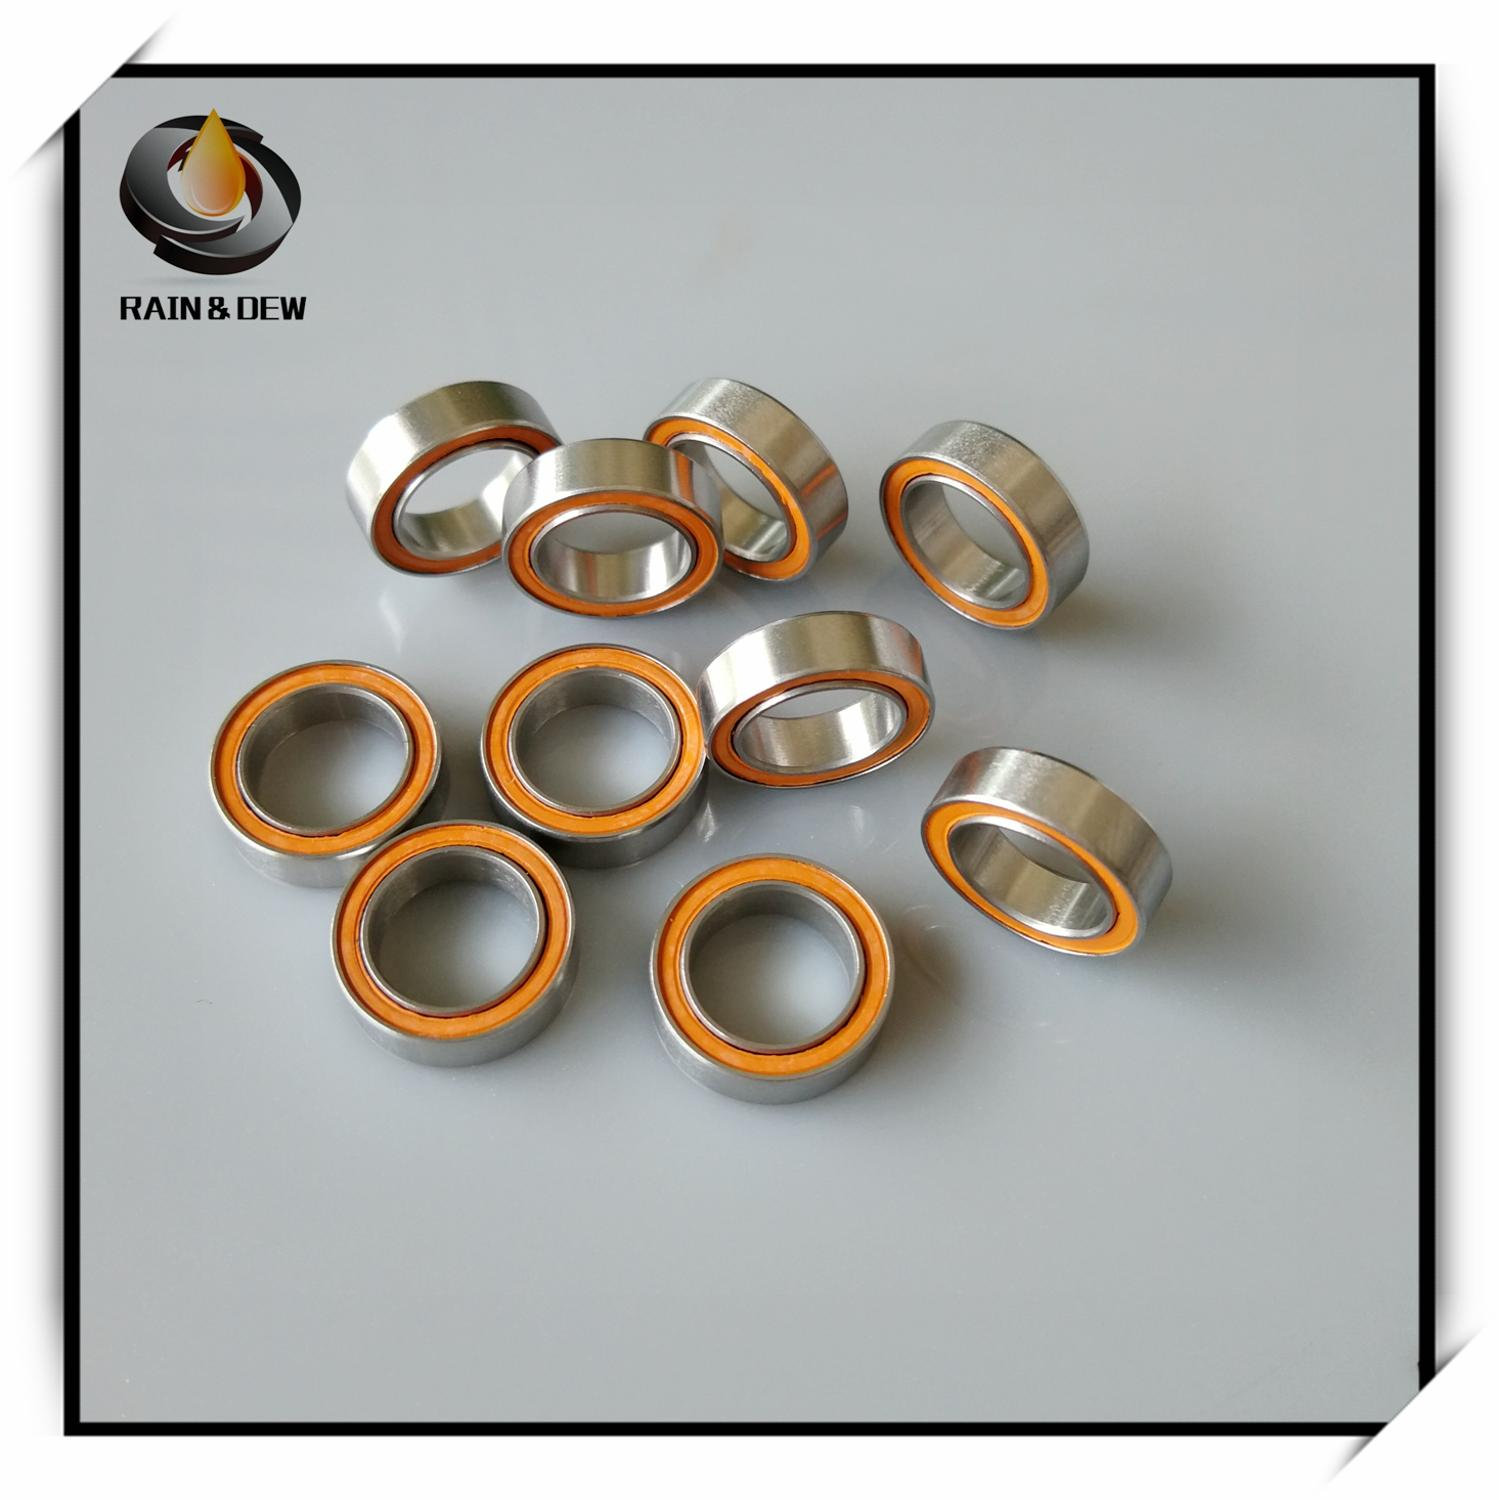 ABEC-7 SMR128-2RS 440c Stainless Steel CERAMIC Ball Bearing 8x12x3.5 mm 5 PC